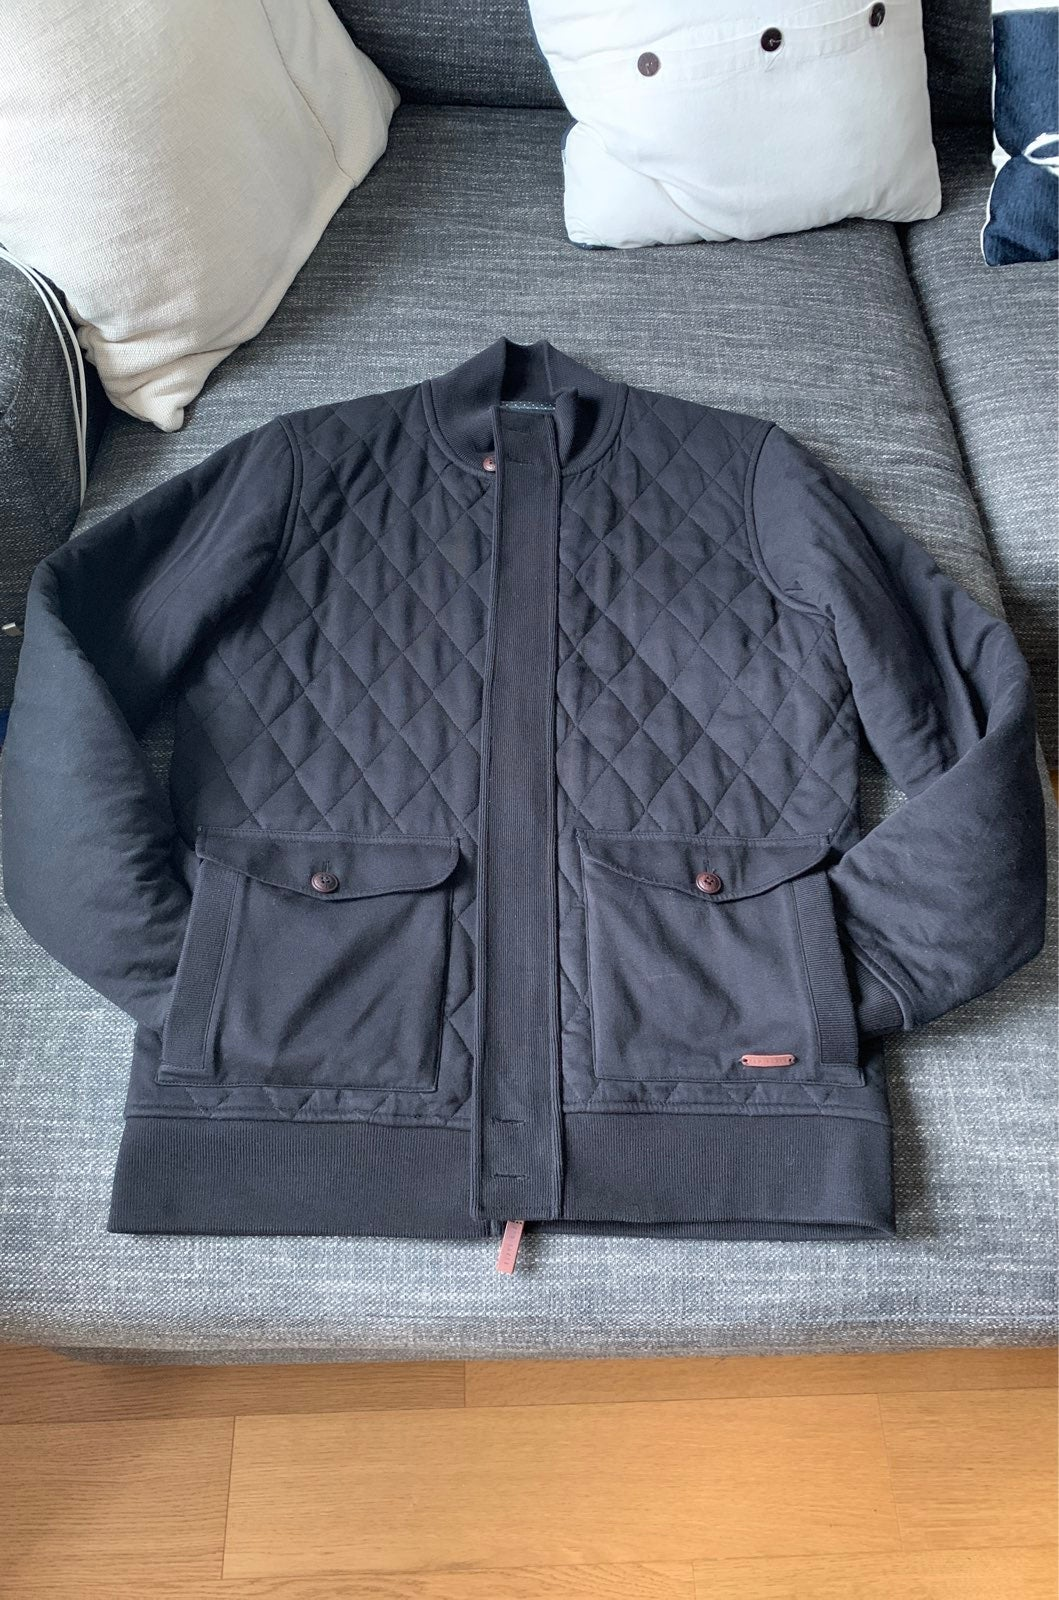 Men's Ted Baker jacket